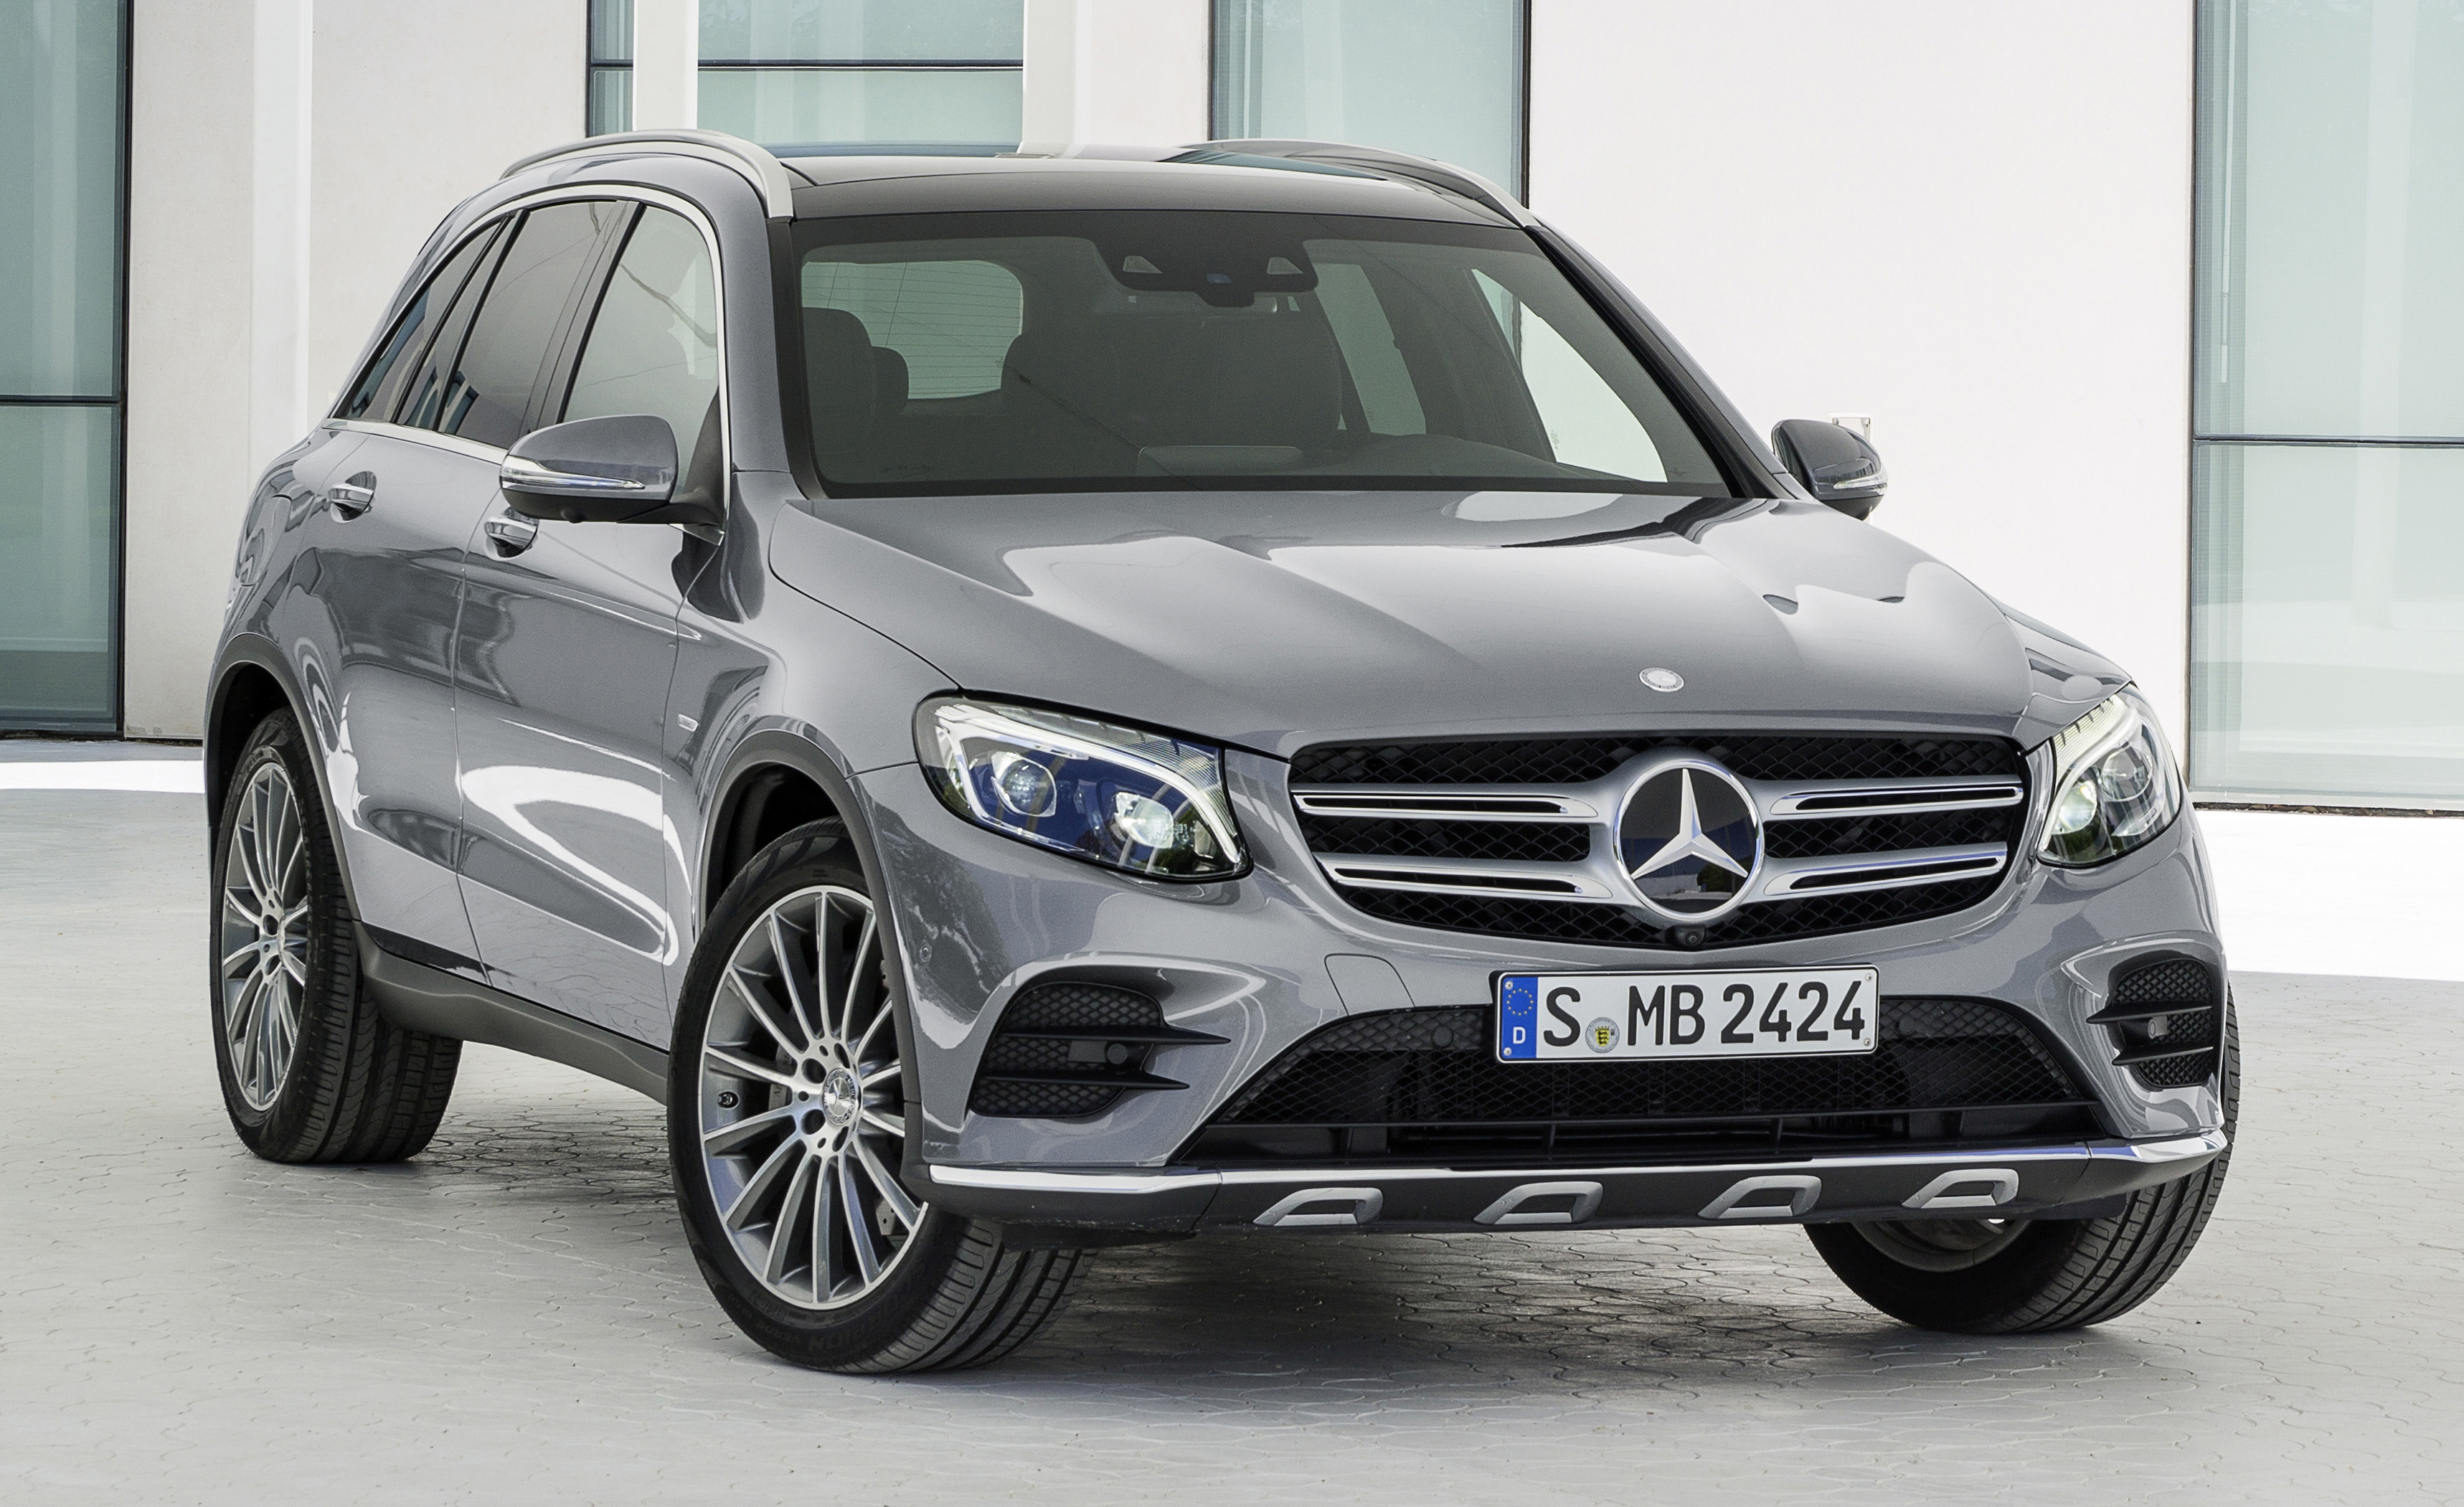 Mercedes 350 Suv >> Mercedes-Benz GLC unveiled – the SUV sweet spot? Image 351698